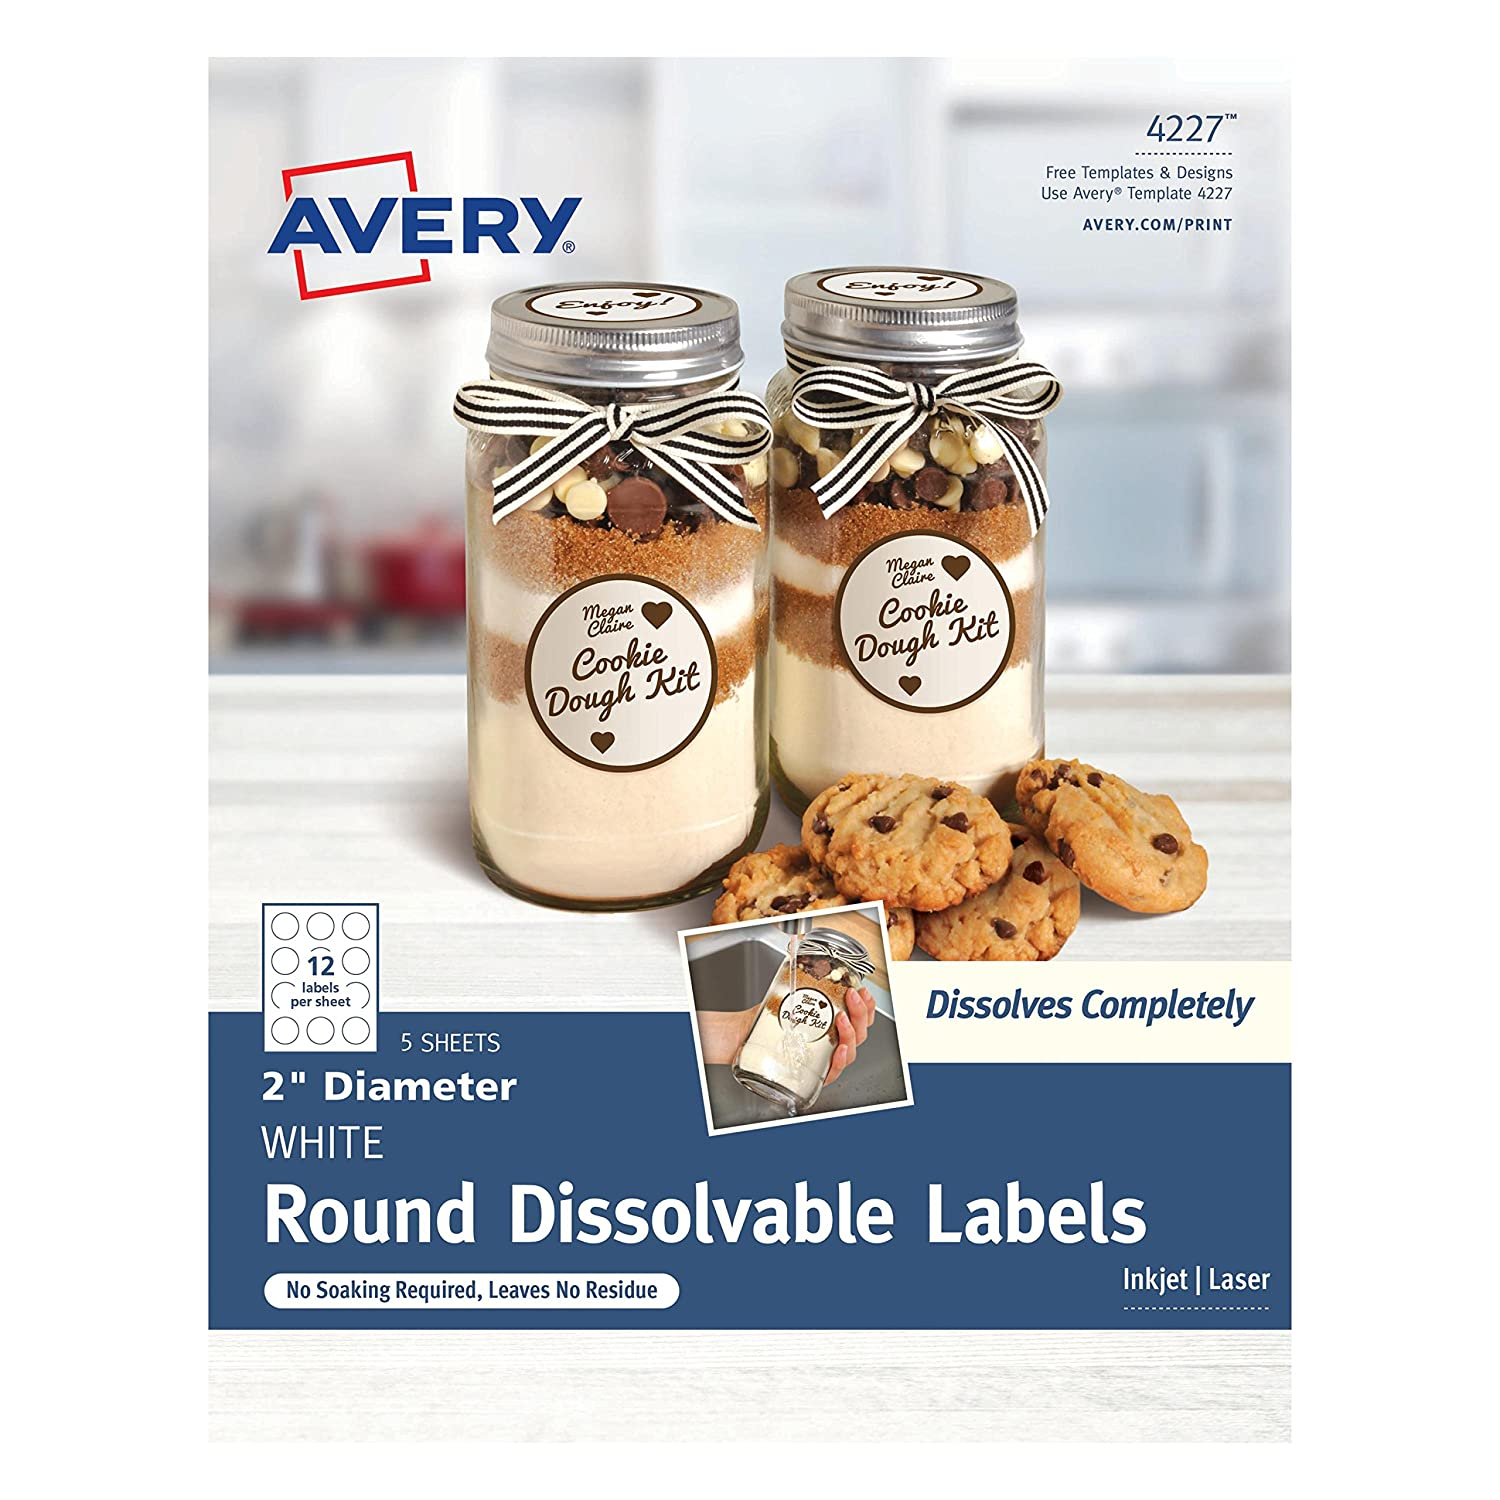 """Avery Dissolvable Round Labels, 2"""" Diameter, Pack of 60 (4227)"""